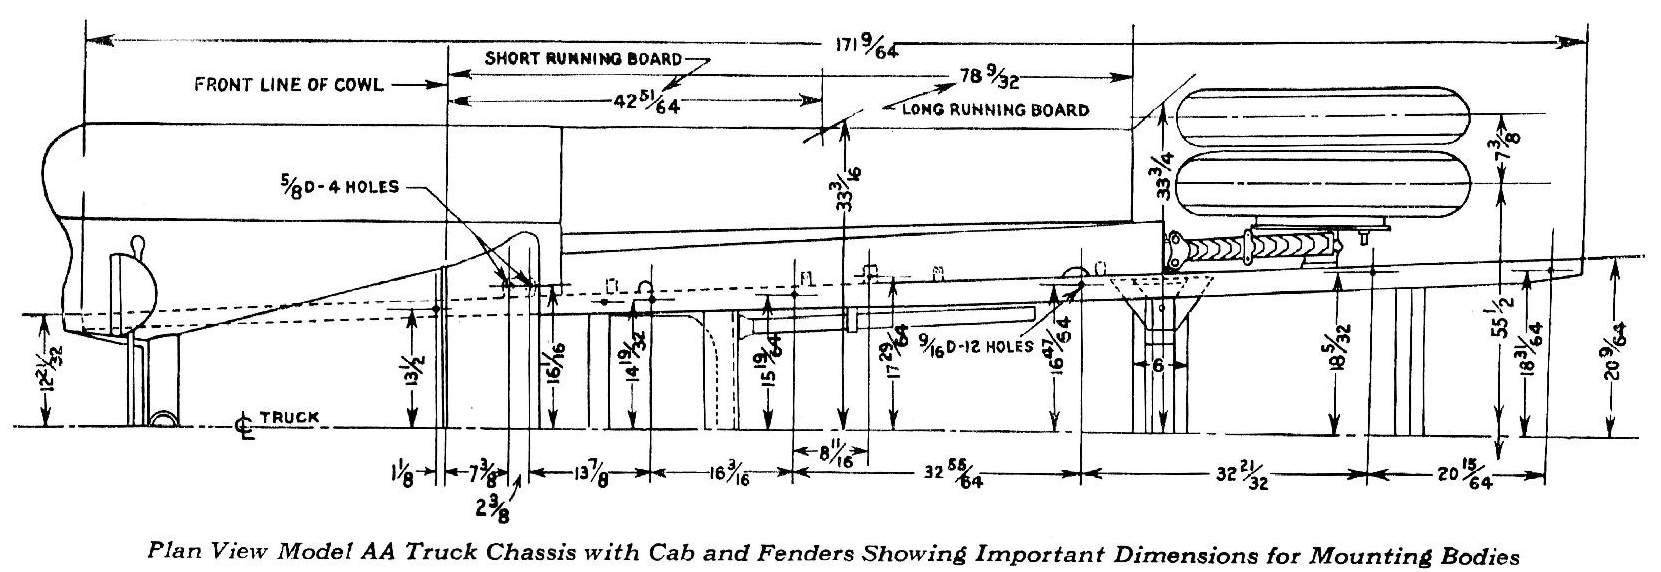 1954 Dodge Coronet Wiring Diagram Wire Data Schema Pickup Images Gallery